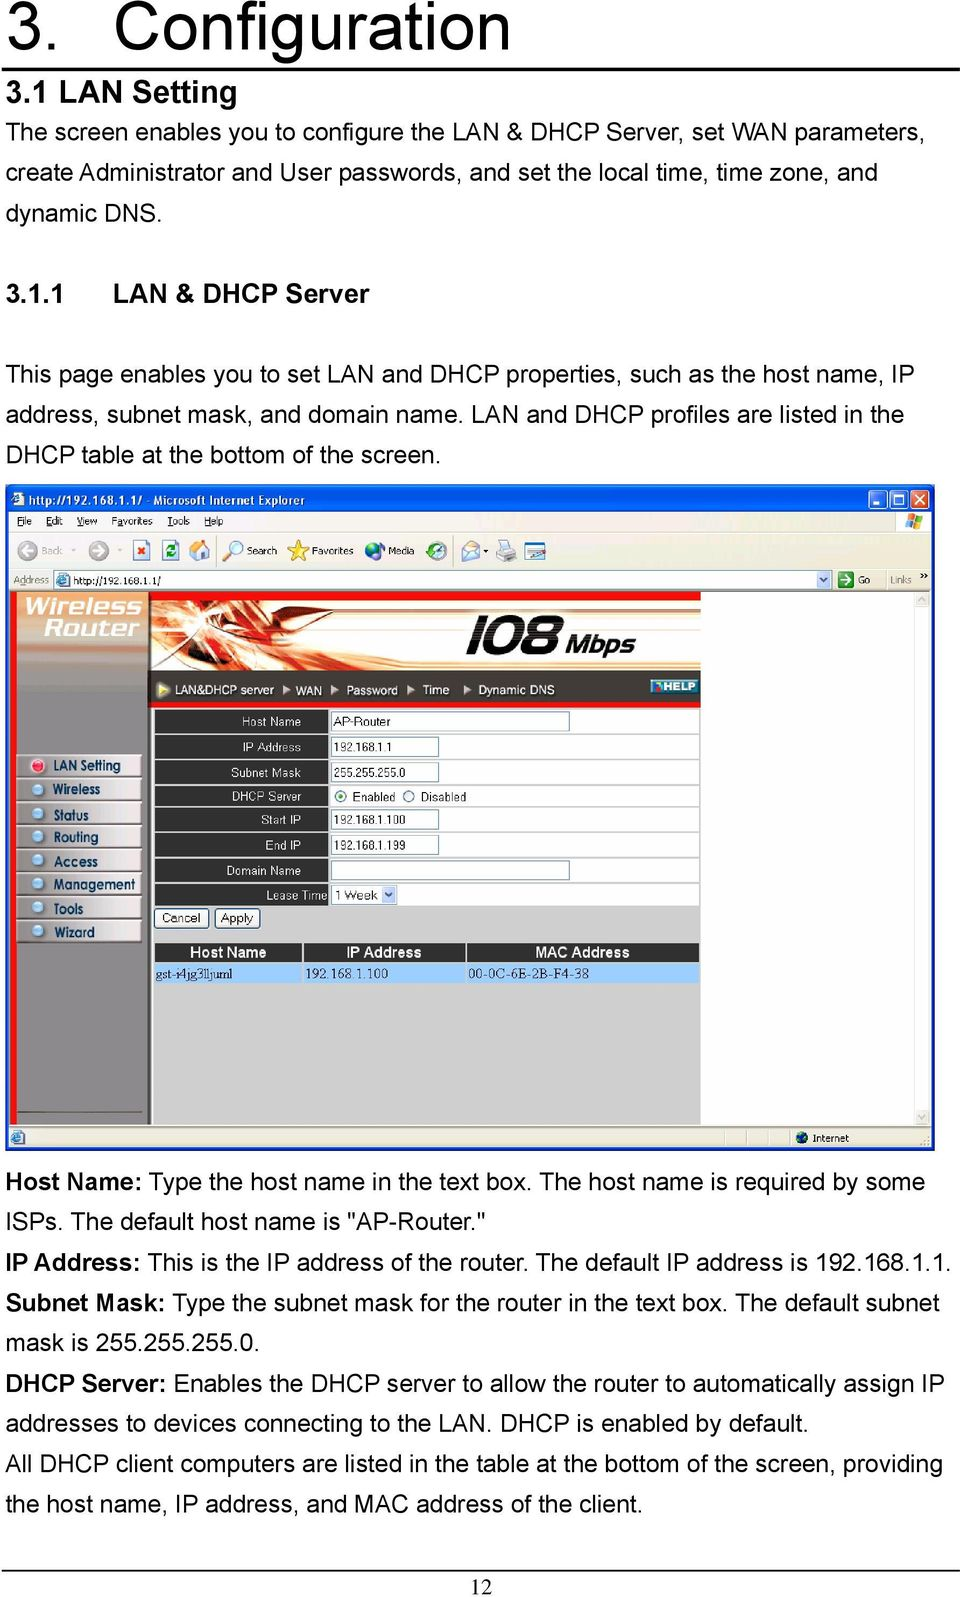 LAN and DHCP profiles are listed in the DHCP table at the bottom of the screen. Host Name: Type the host name in the text box. The host name is required by some ISPs.